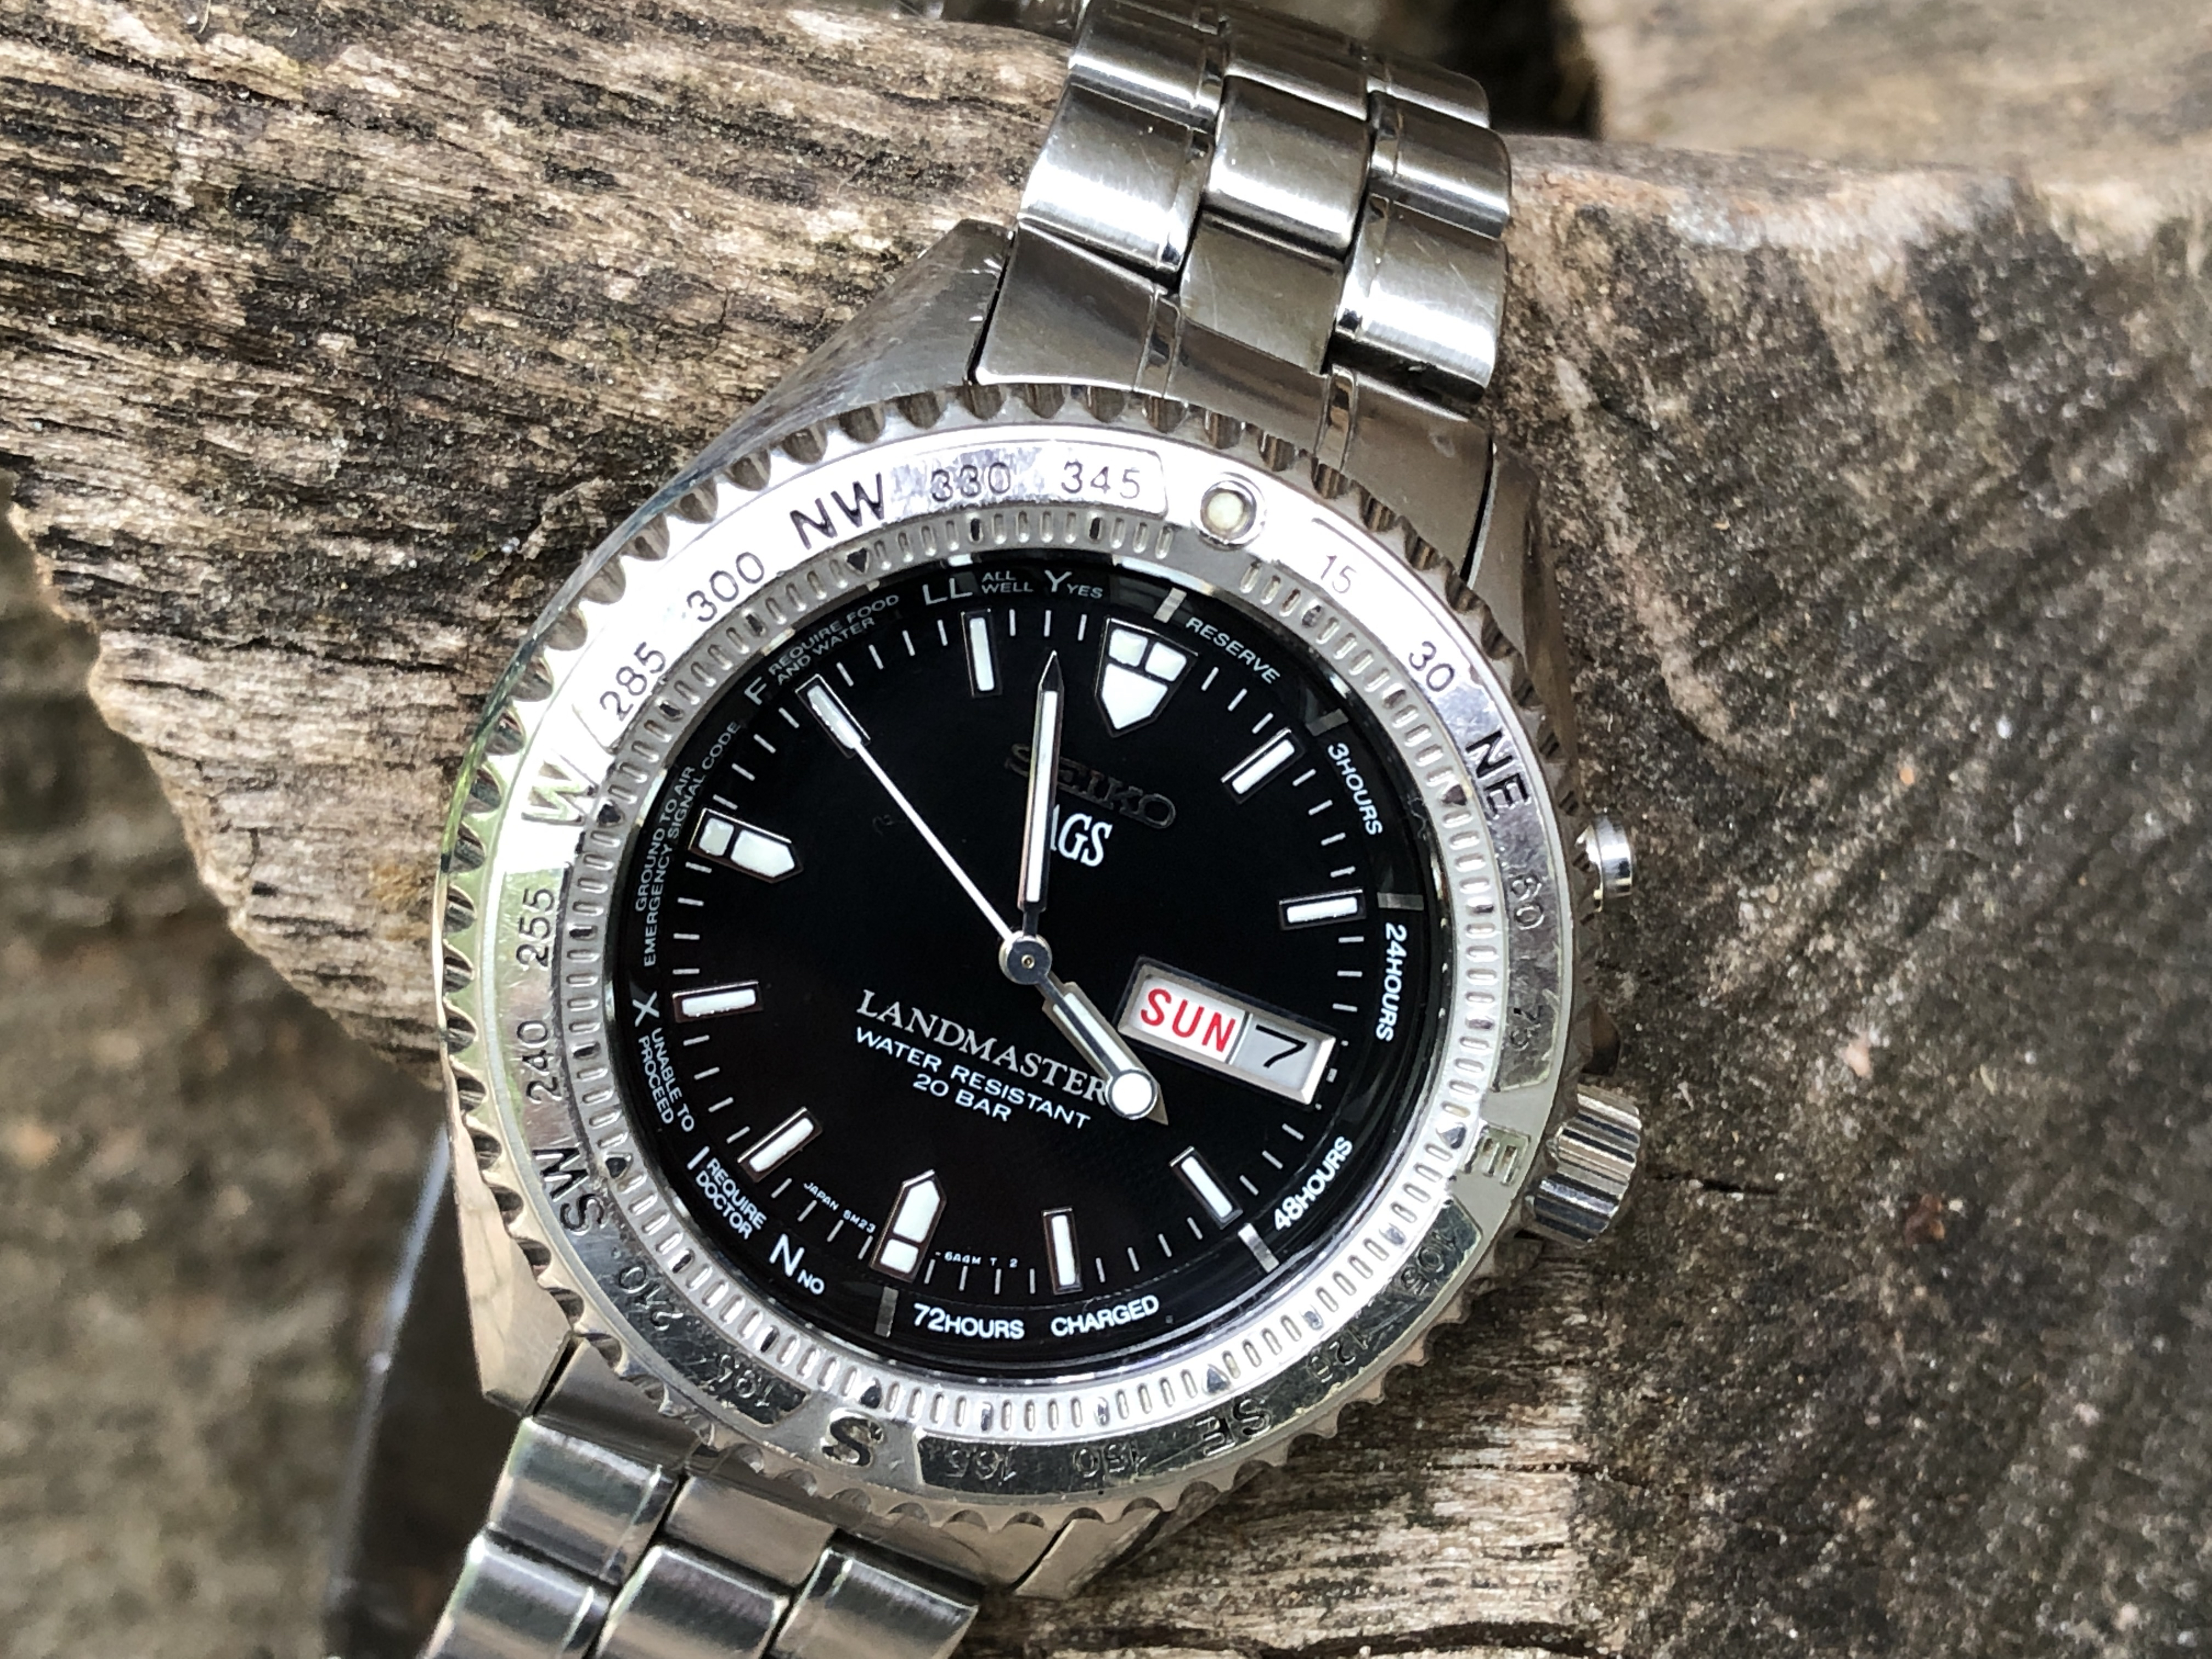 Seiko Landmaster Stainless Steel 5M23-6A20 - SBBW005 (For sale)